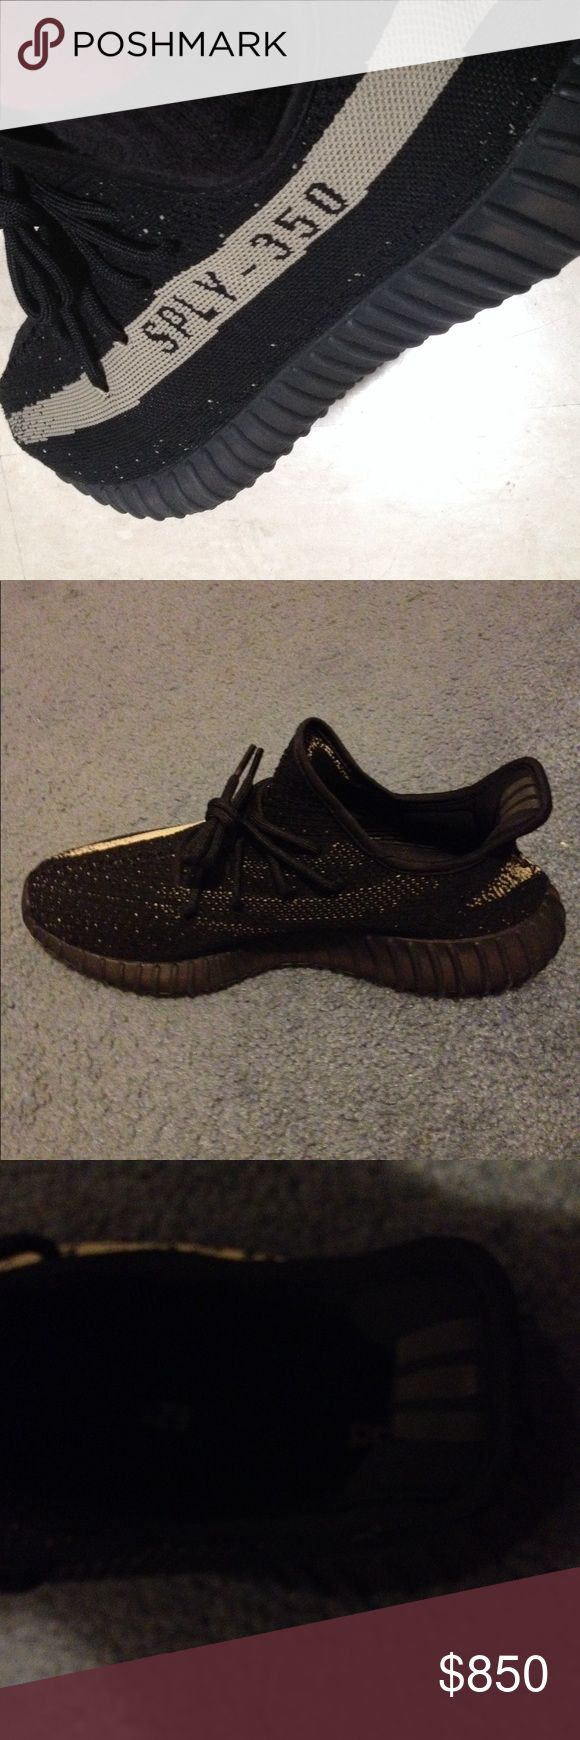 Yeezys Oreo v2 They are in amazing condition and only worn once. It comes with the box and 100% authentic they are not fake. Yeezy Shoes Athletic Shoes